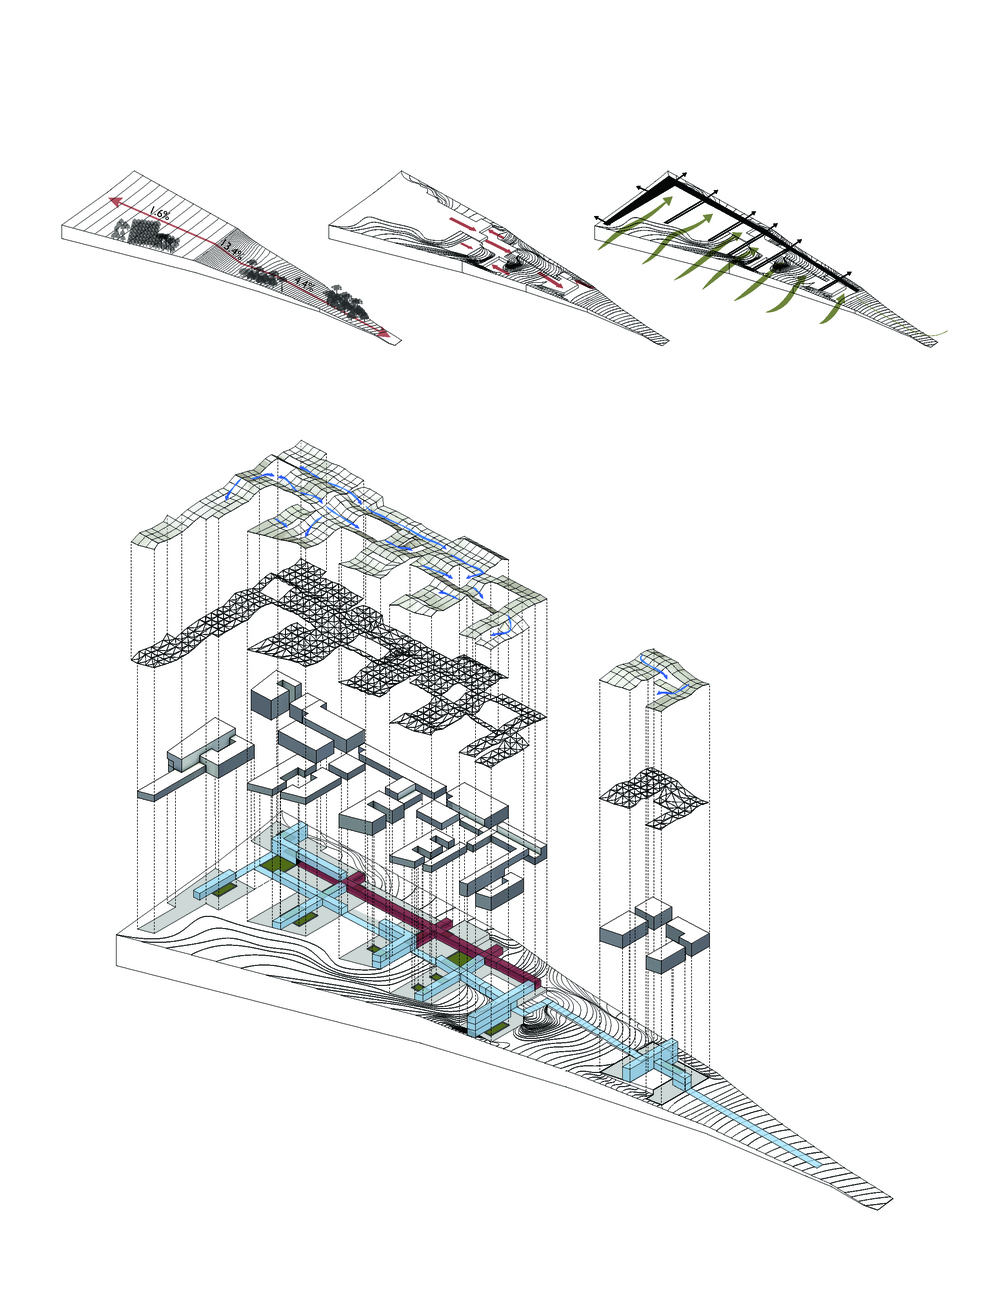 12_A_Design Strategies_Growing Canopies.jpg